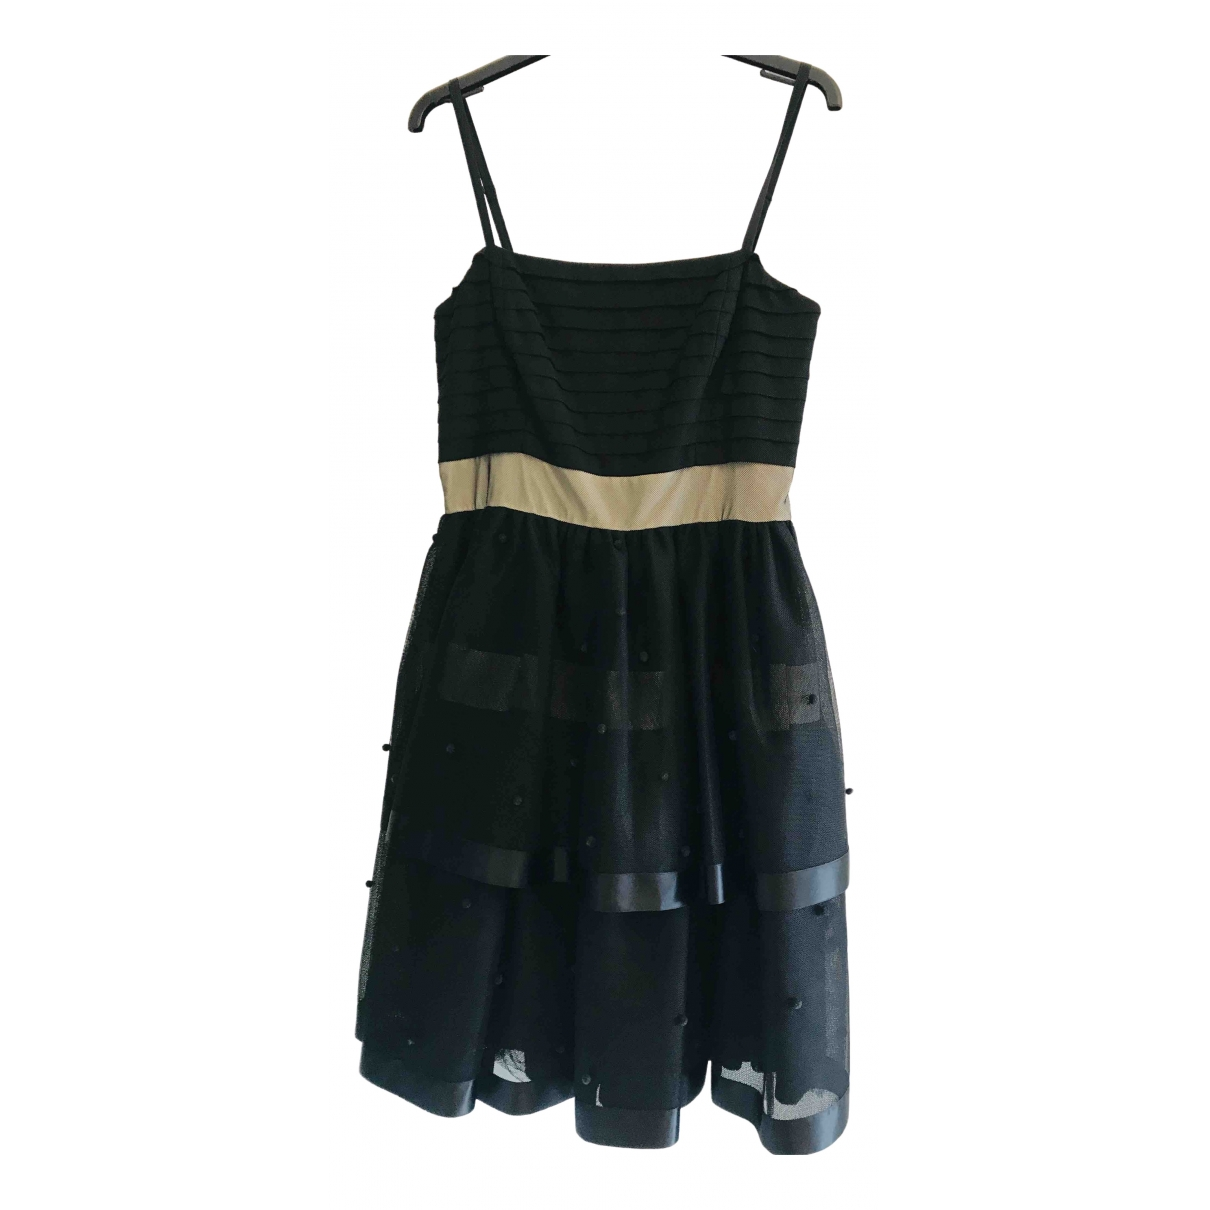 Juicy Couture \N Kleid in  Schwarz Polyester